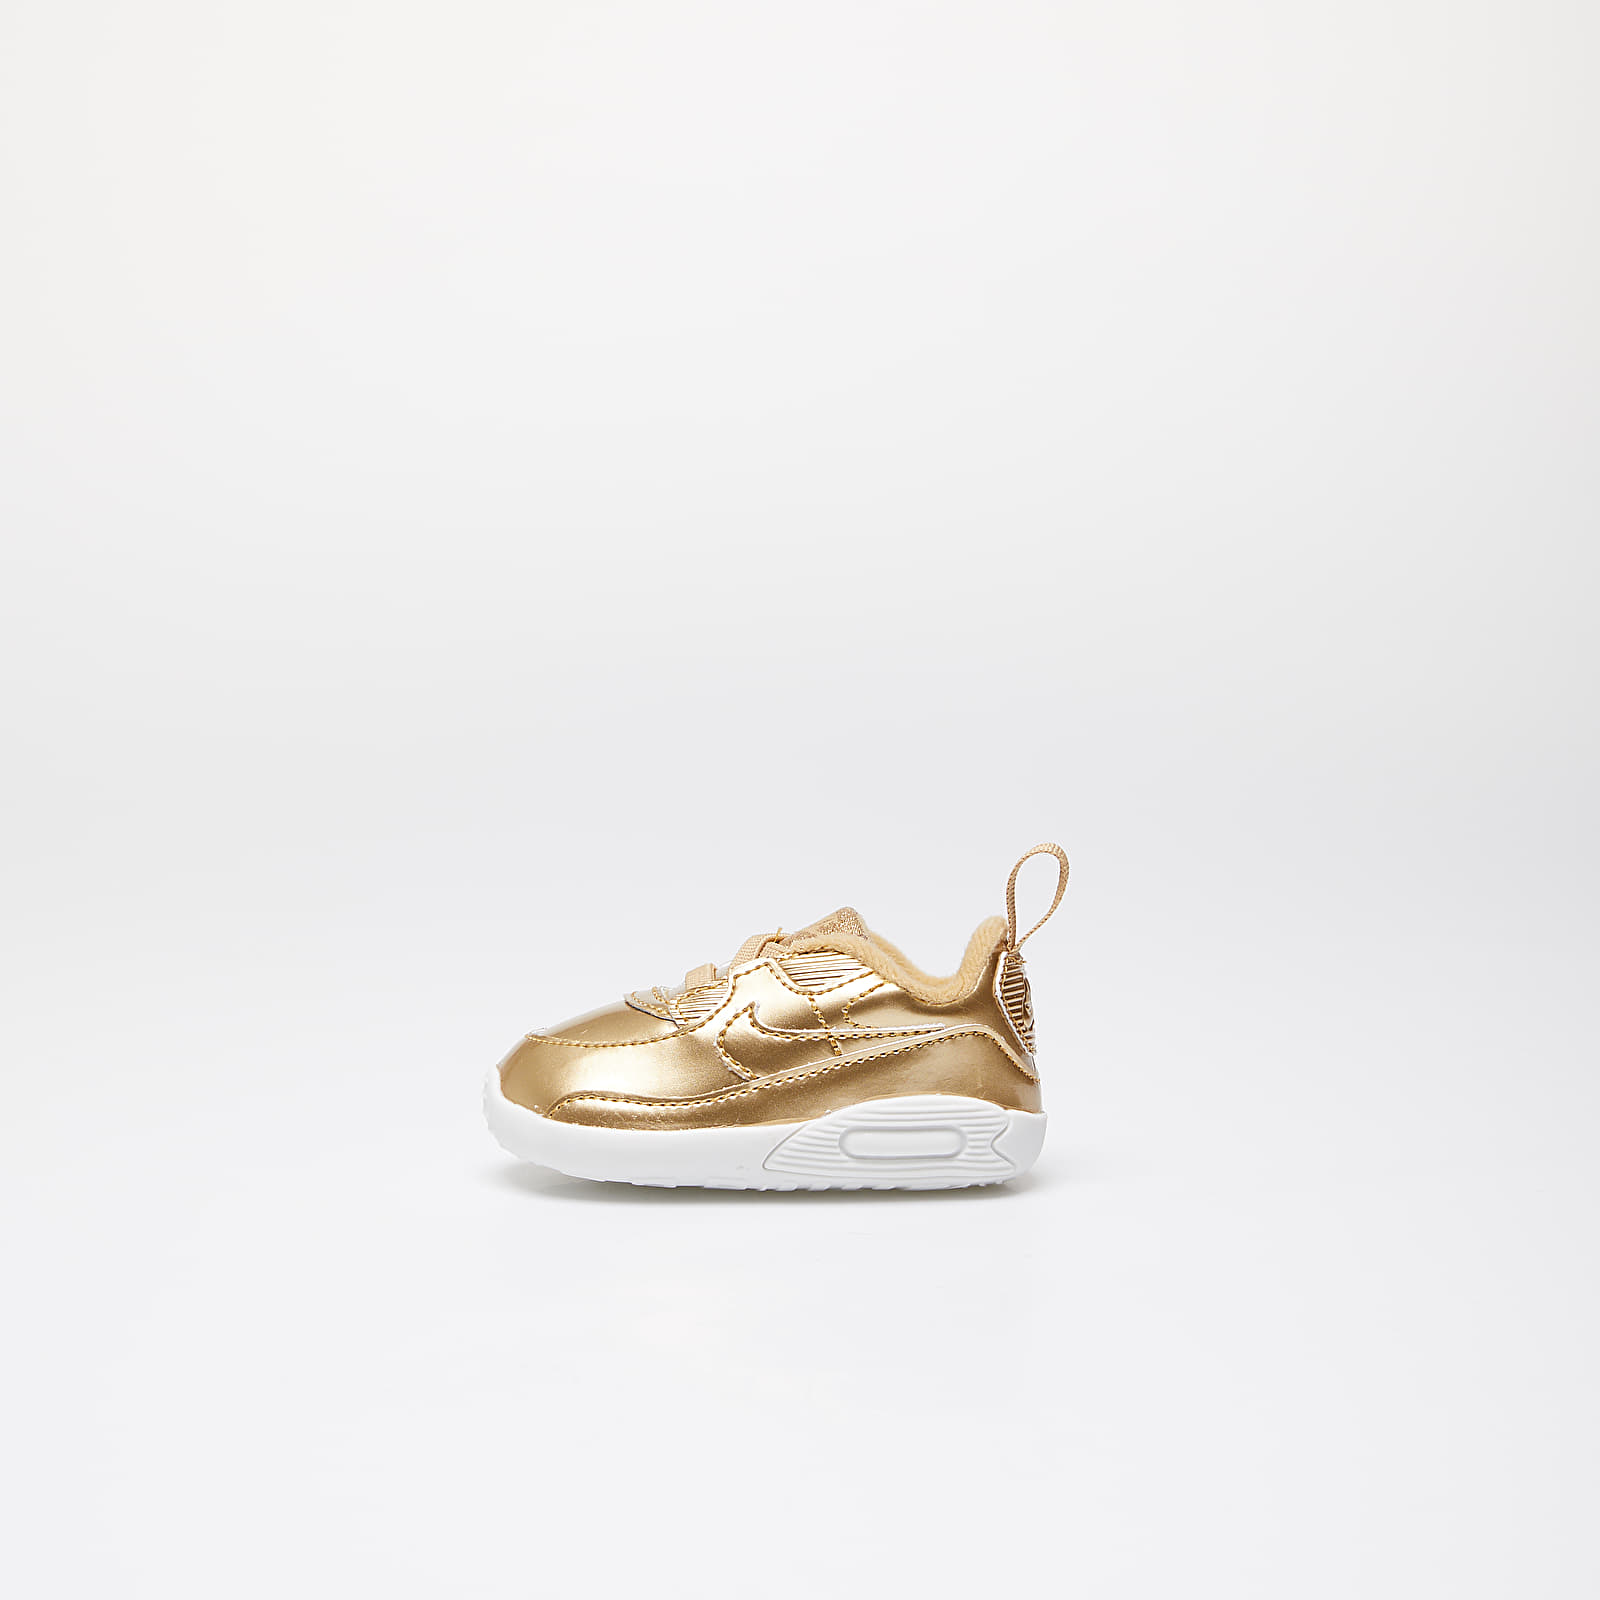 Kinderschuhe Nike Max 90 Crib QS Metallic Gold/ Metallic Gold-Club Gold